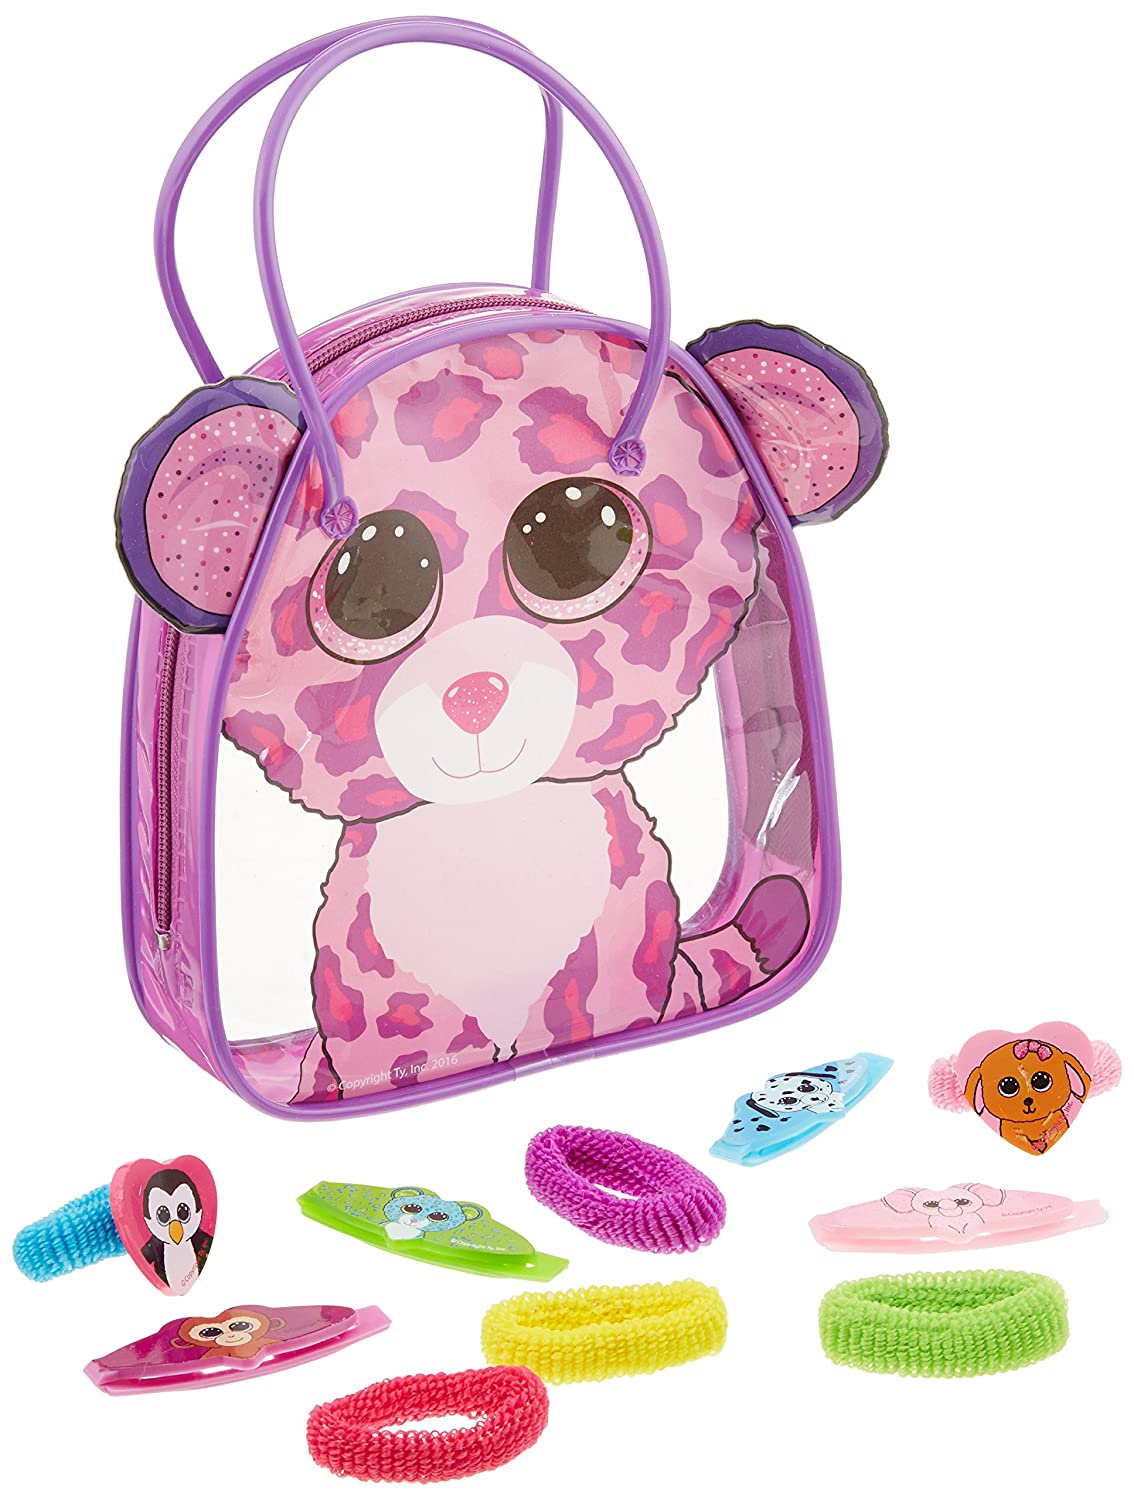 Amazon.com  Koehler 12010575 15 Inch Glamour The Leopard Beanie Boo Bag  Set  Home   Kitchen 9c775439656